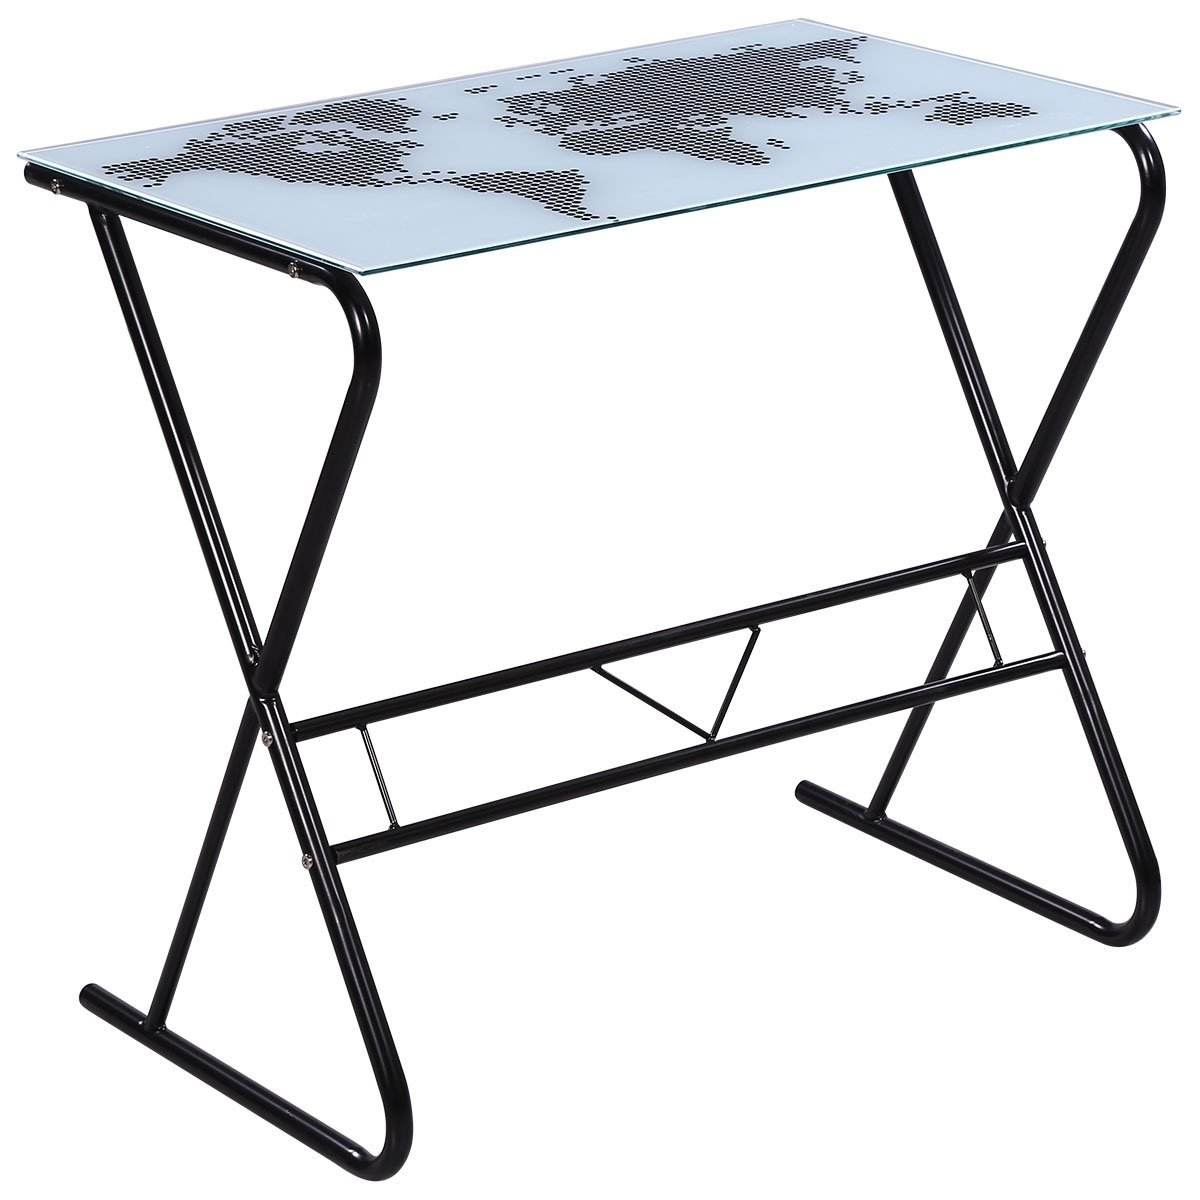 Cheap map desk find map desk deals on line at alibaba get quotations vidaxl glass desk with world map pattern gumiabroncs Choice Image